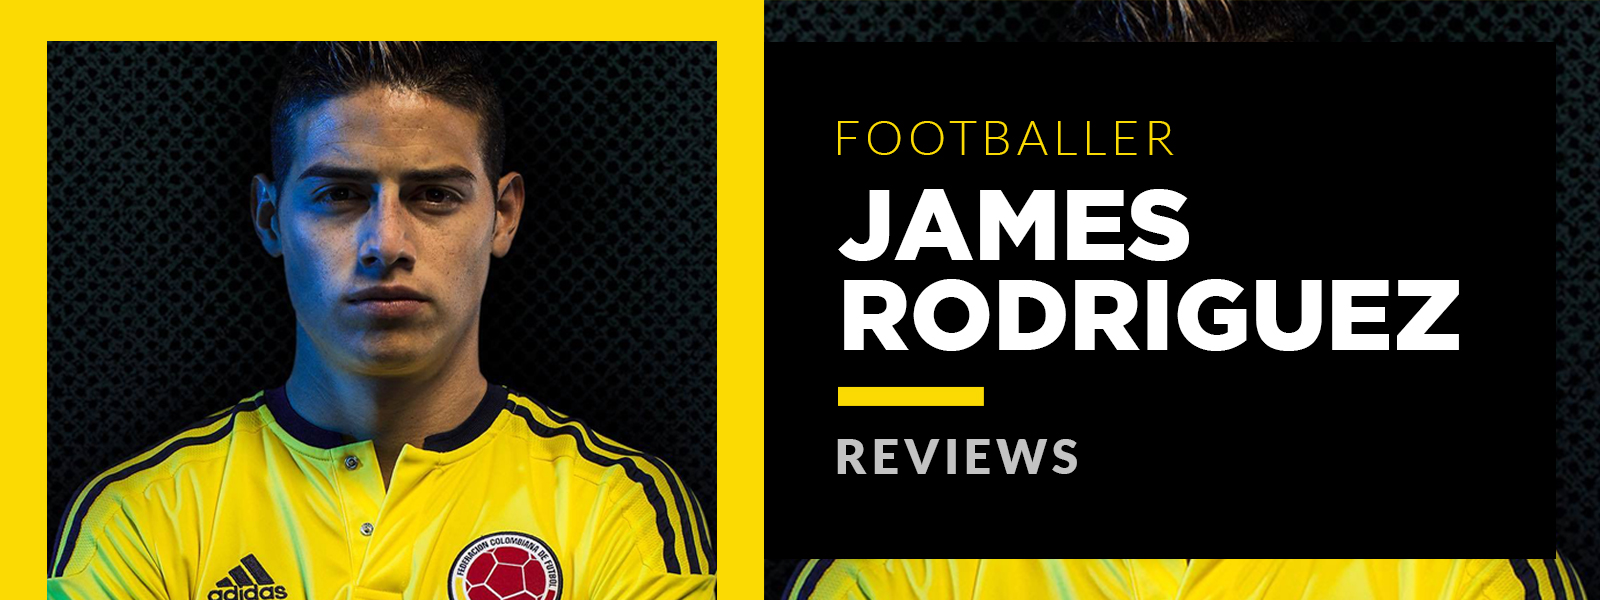 Colombian Footballer James Rodriguez Reviews